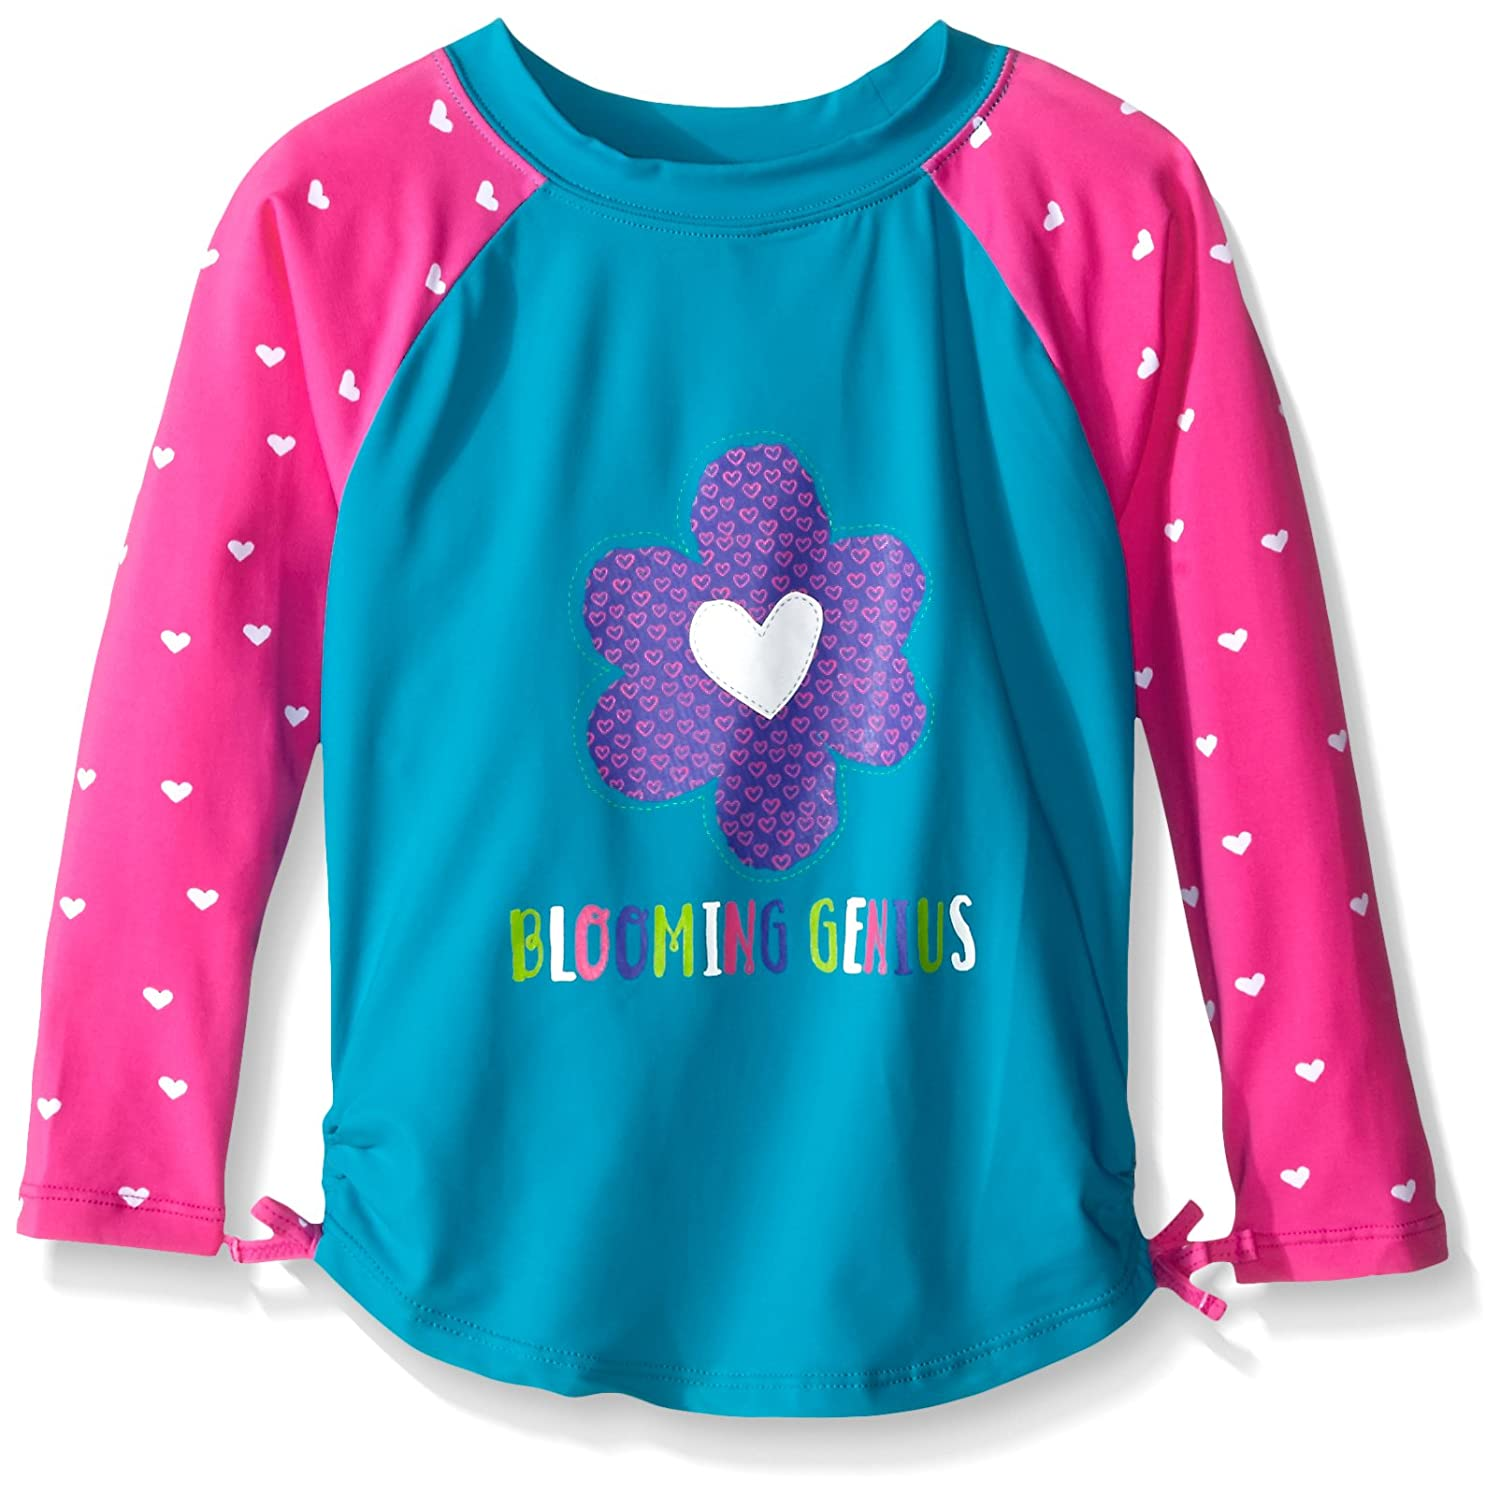 Hatley Girls' Hearts Rash Guard Hatley Children' s Apparel BS3GAFL099-400